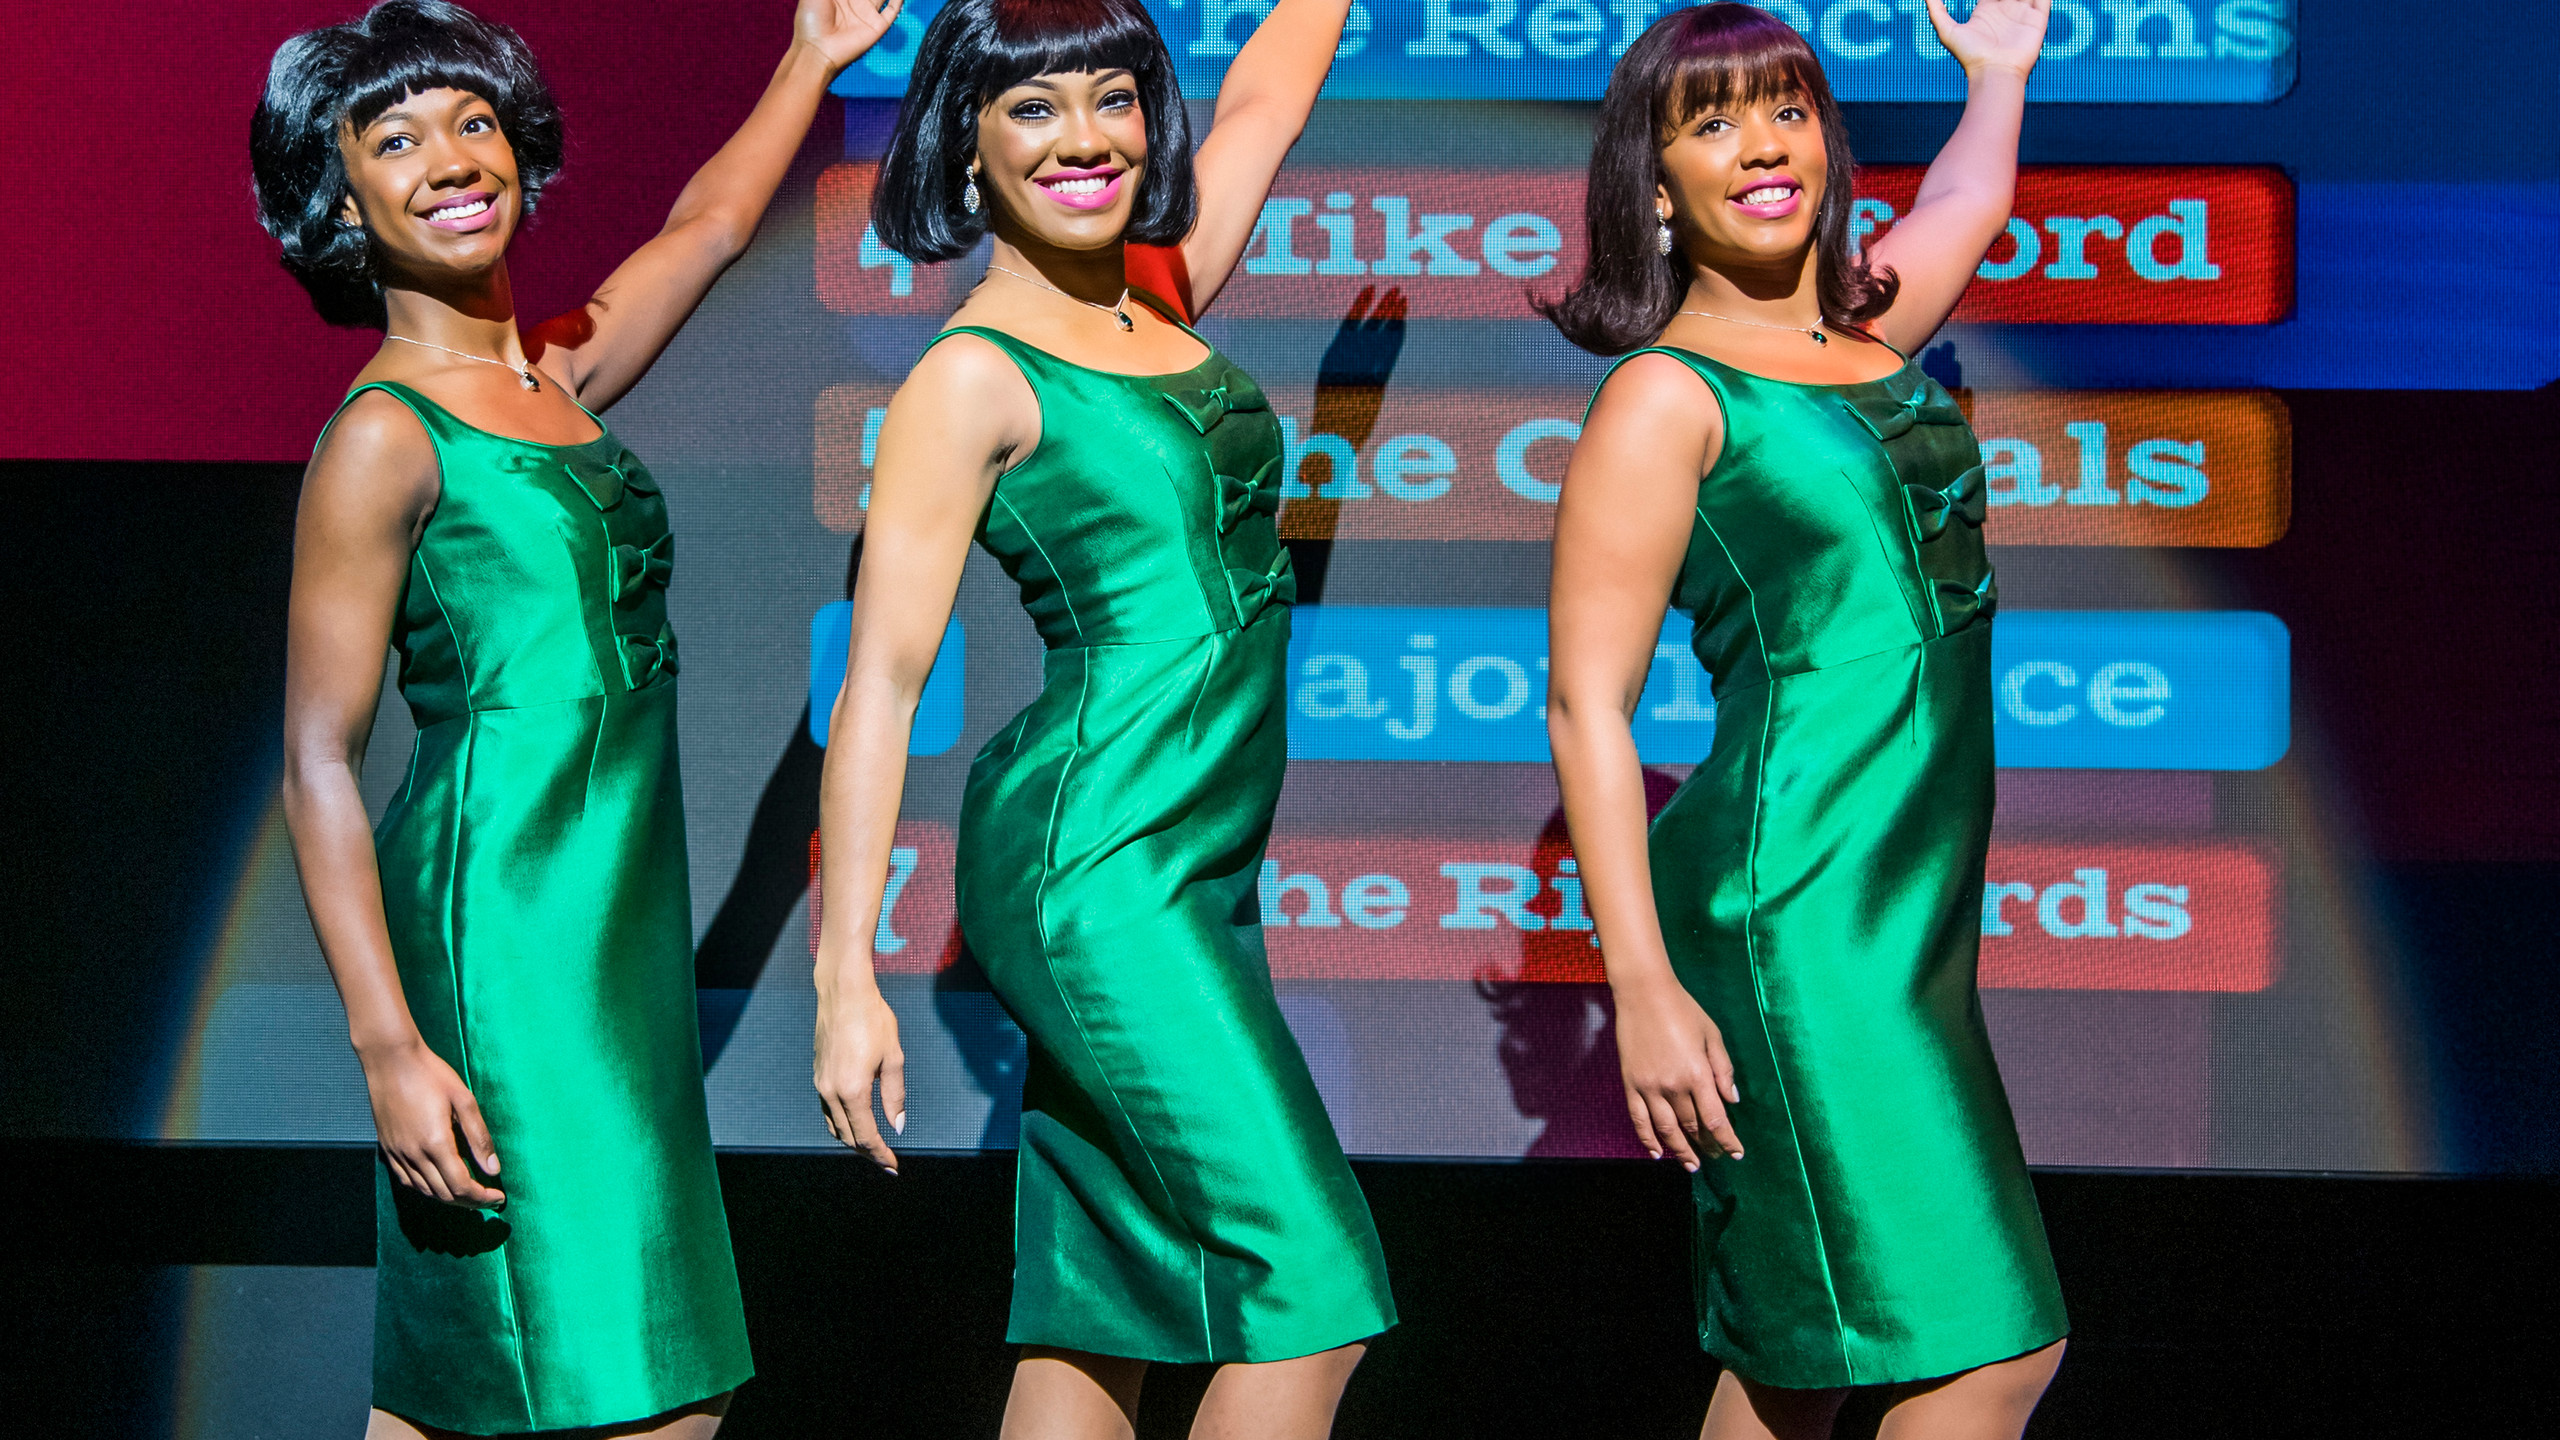 20. MOTOWN THE MUSICAL. The Supremes